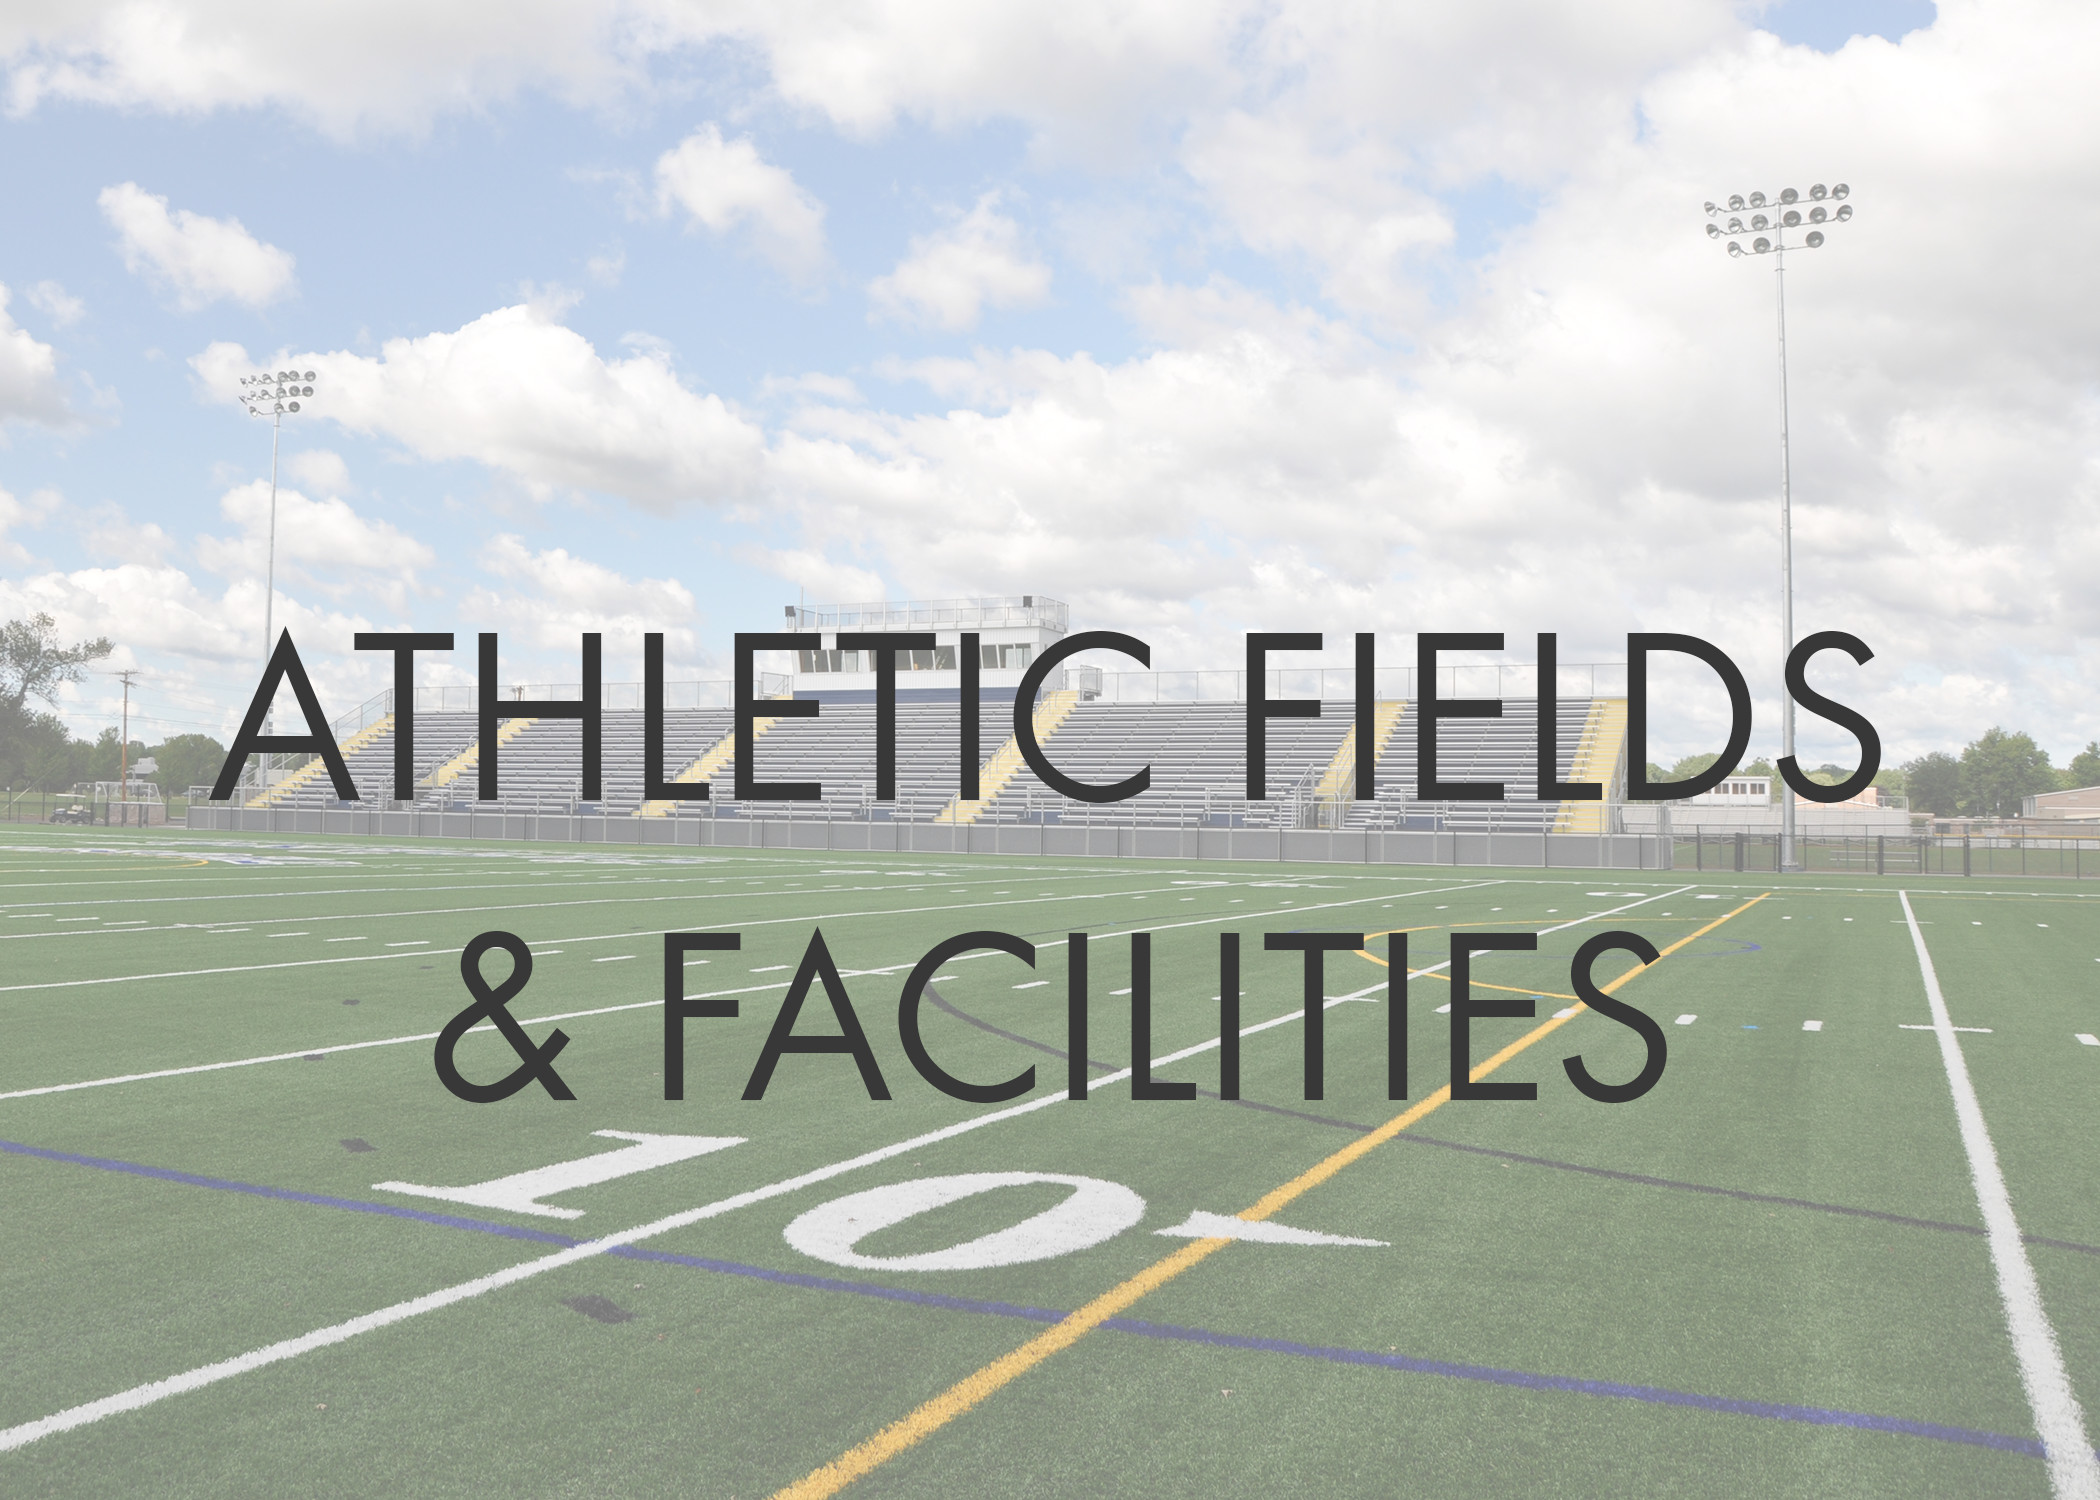 Athletic Field Design  -Synthetic Turf  -Natural Turf   -Seed   -Sod   -Irrigation   -Rehabilitation Athletic Track & Field Events Design Press Boxes Concession Stands Bleachers Feasibility Studies